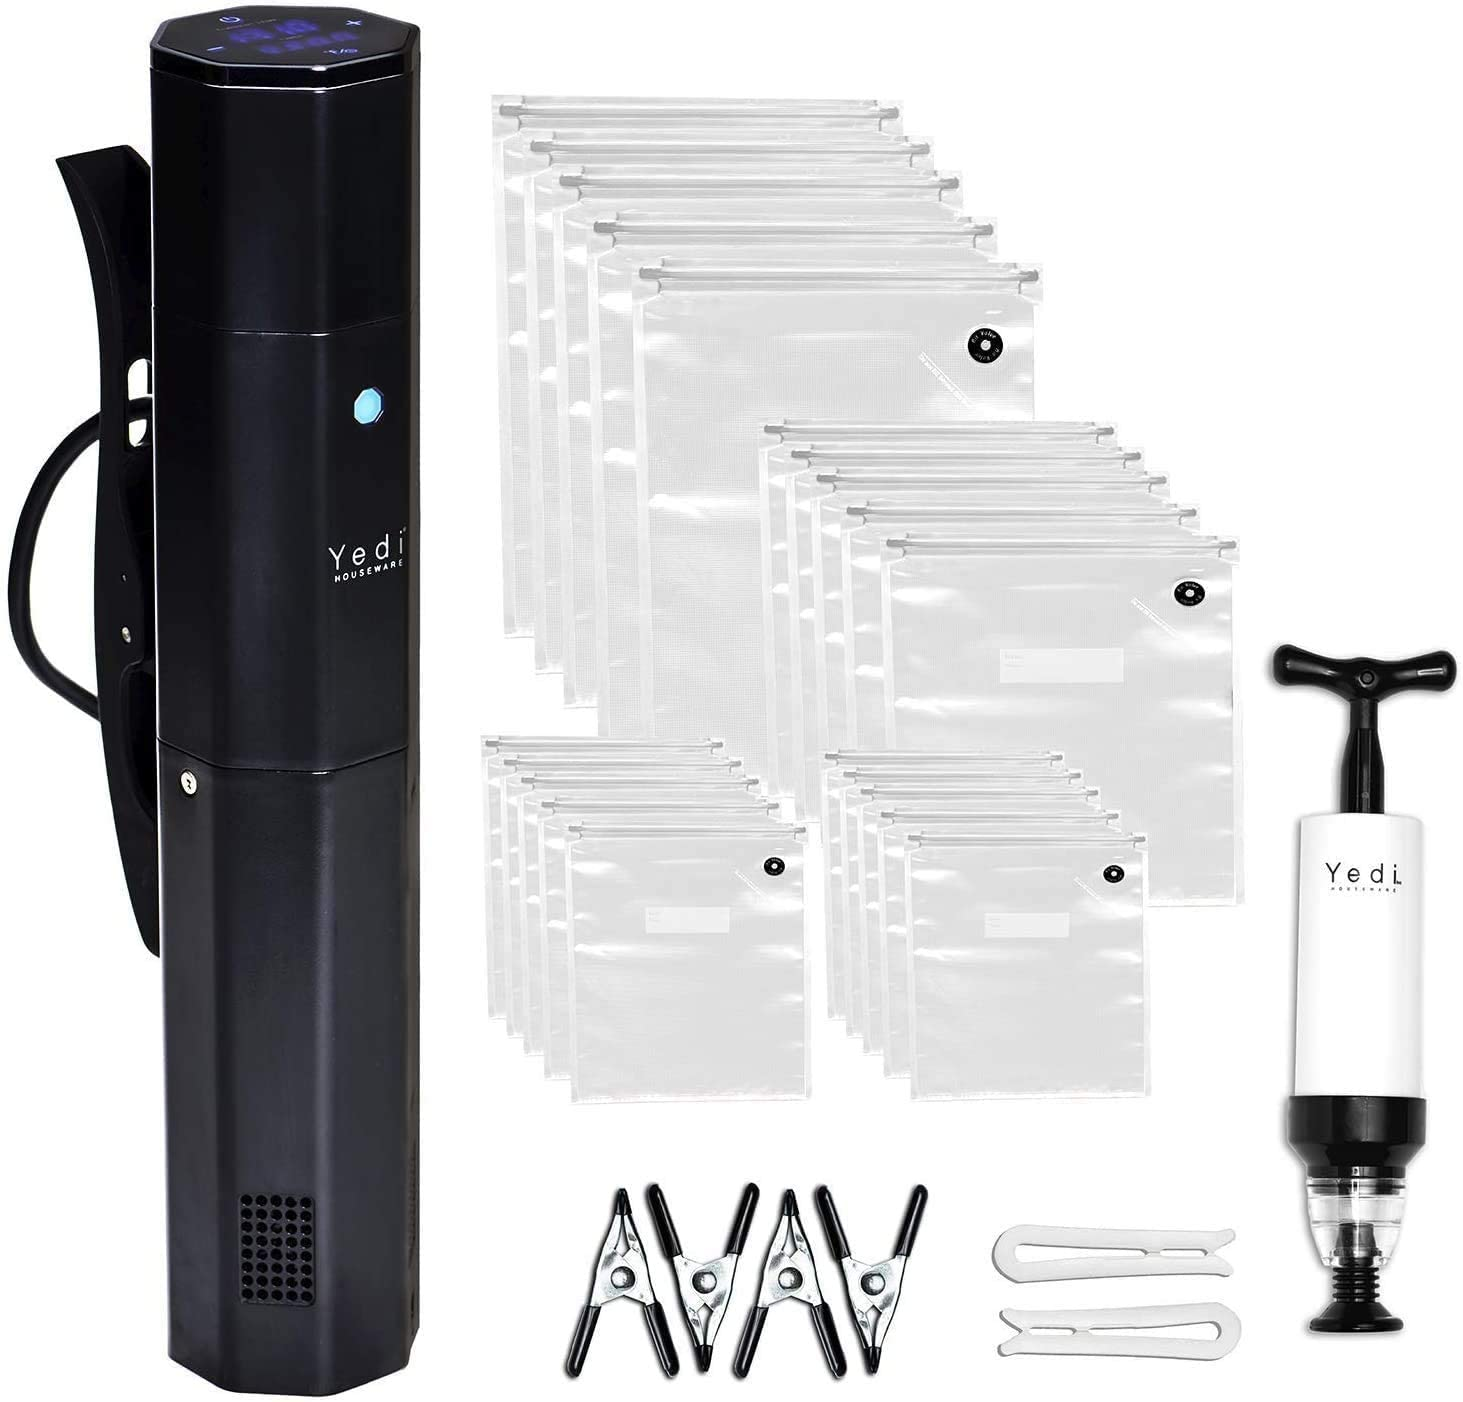 Yedi Infinity Sous Vide, Octcision Technology, Ultra Quiet, HyperFast Water Heating, Deluxe Accessory Kit, 1000 Watts (GV024)